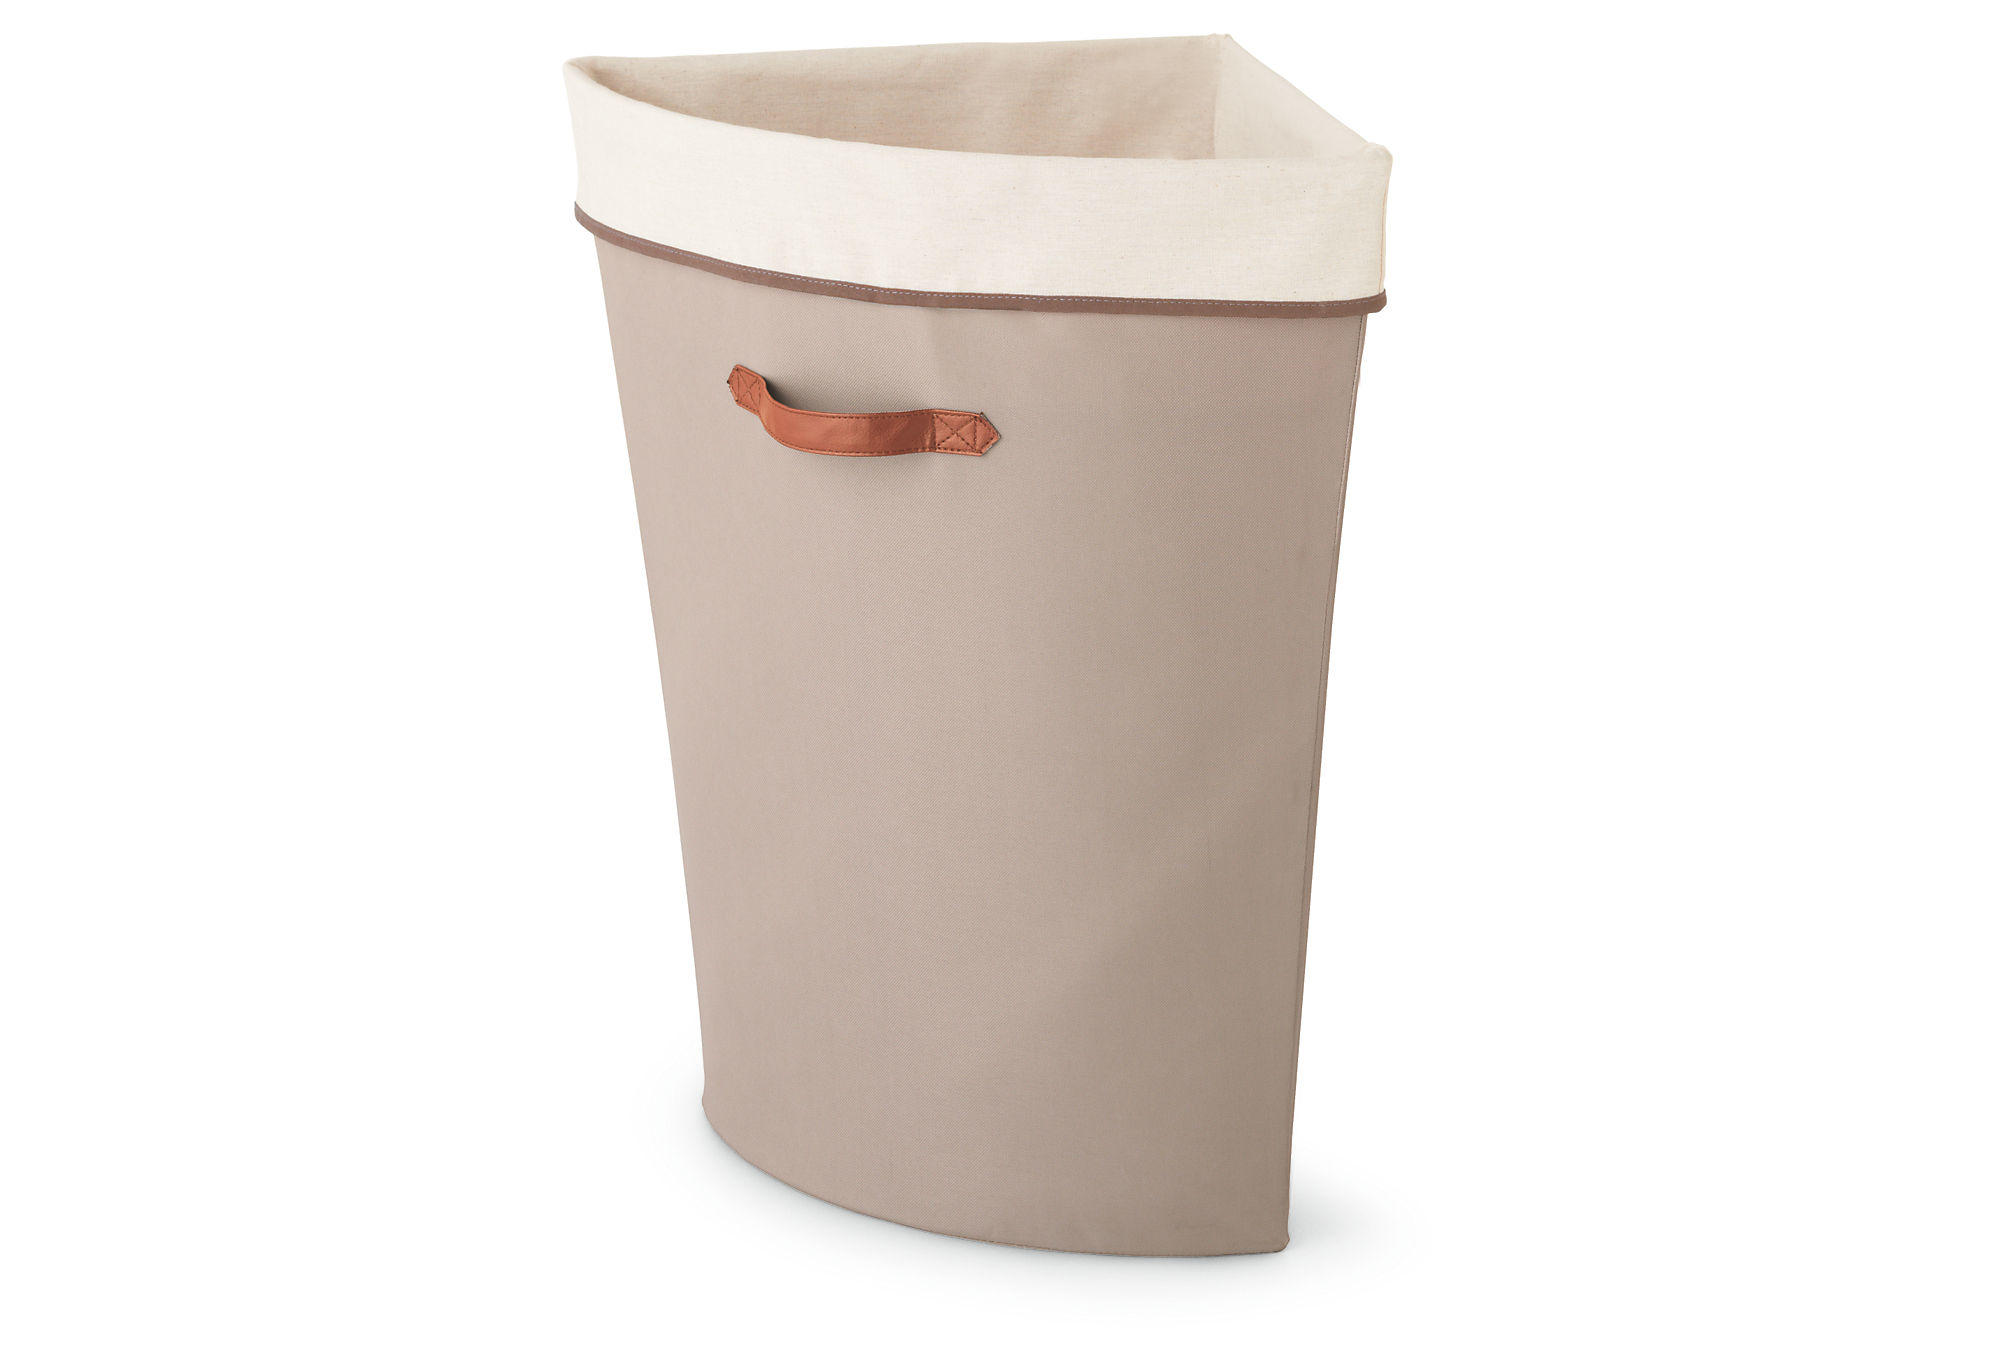 Corner Laundry Corner Laundry Hamper Laundry Hampers From One Kings Lane